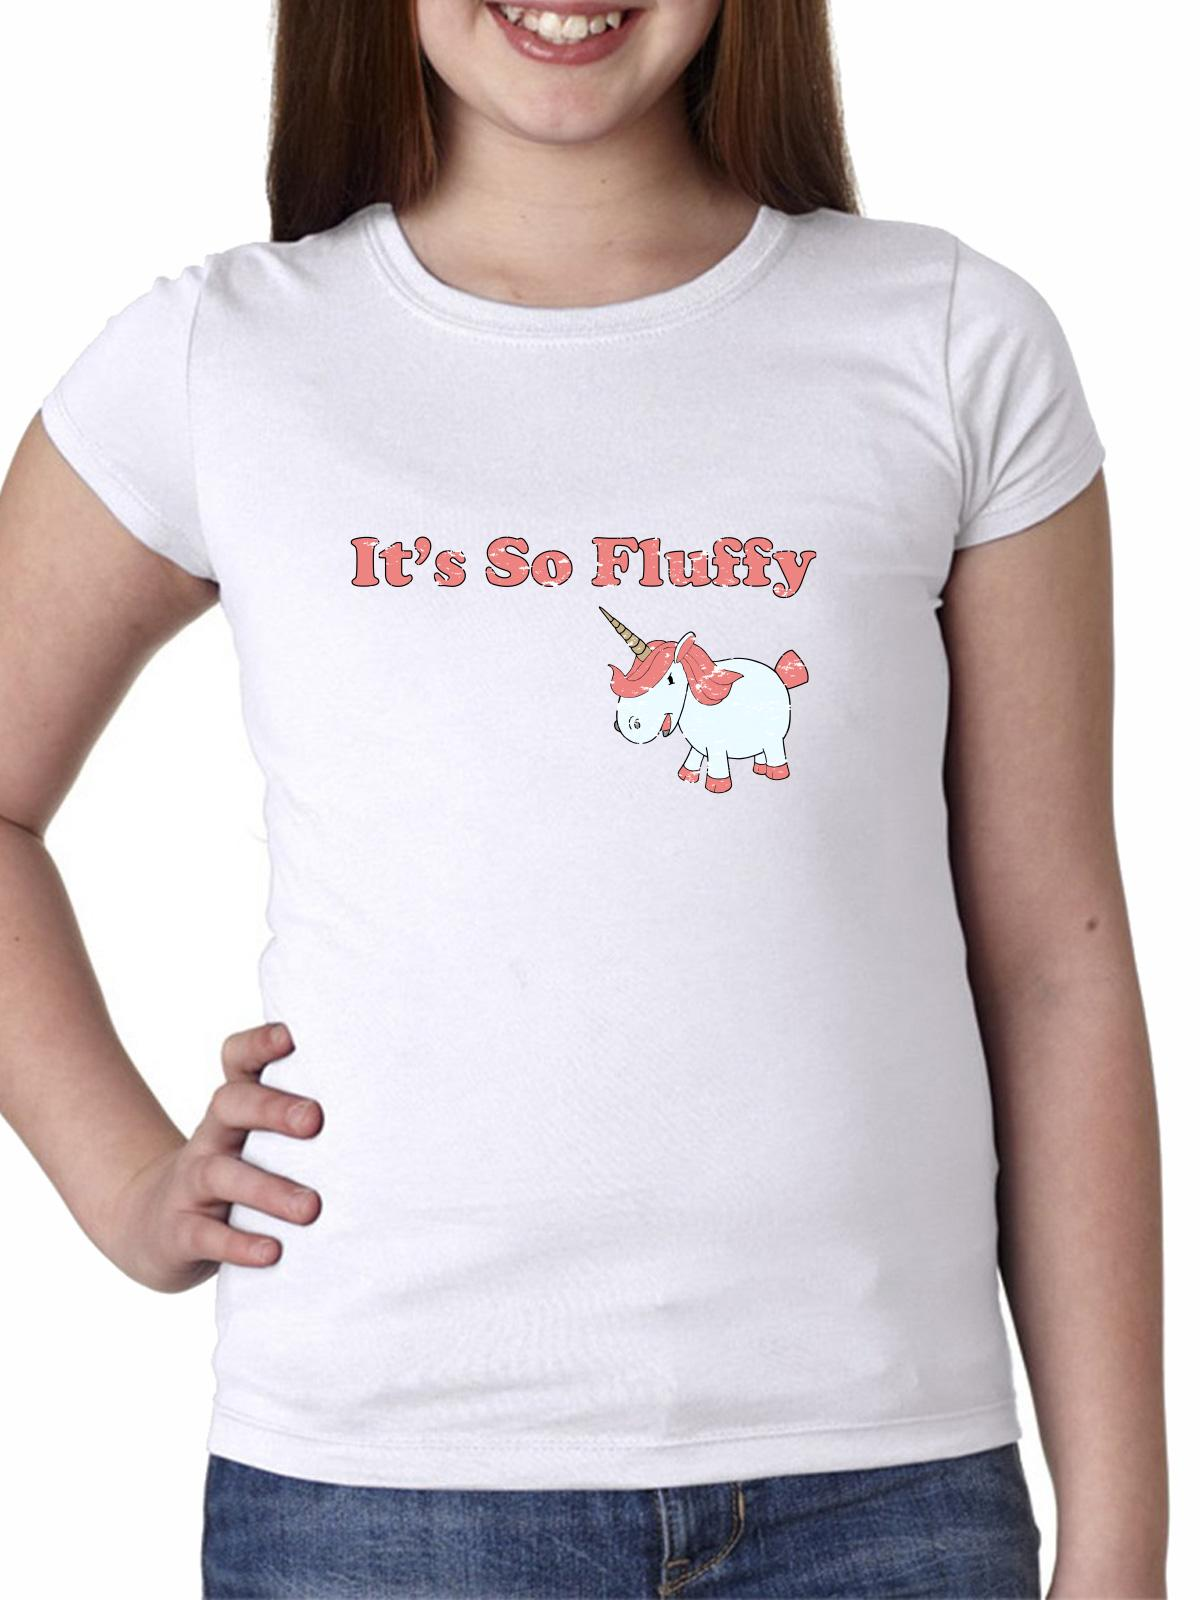 It's So Fluffy - Pink Unicorn - Funny Movie Girl's Cotton Youth T-Shirt